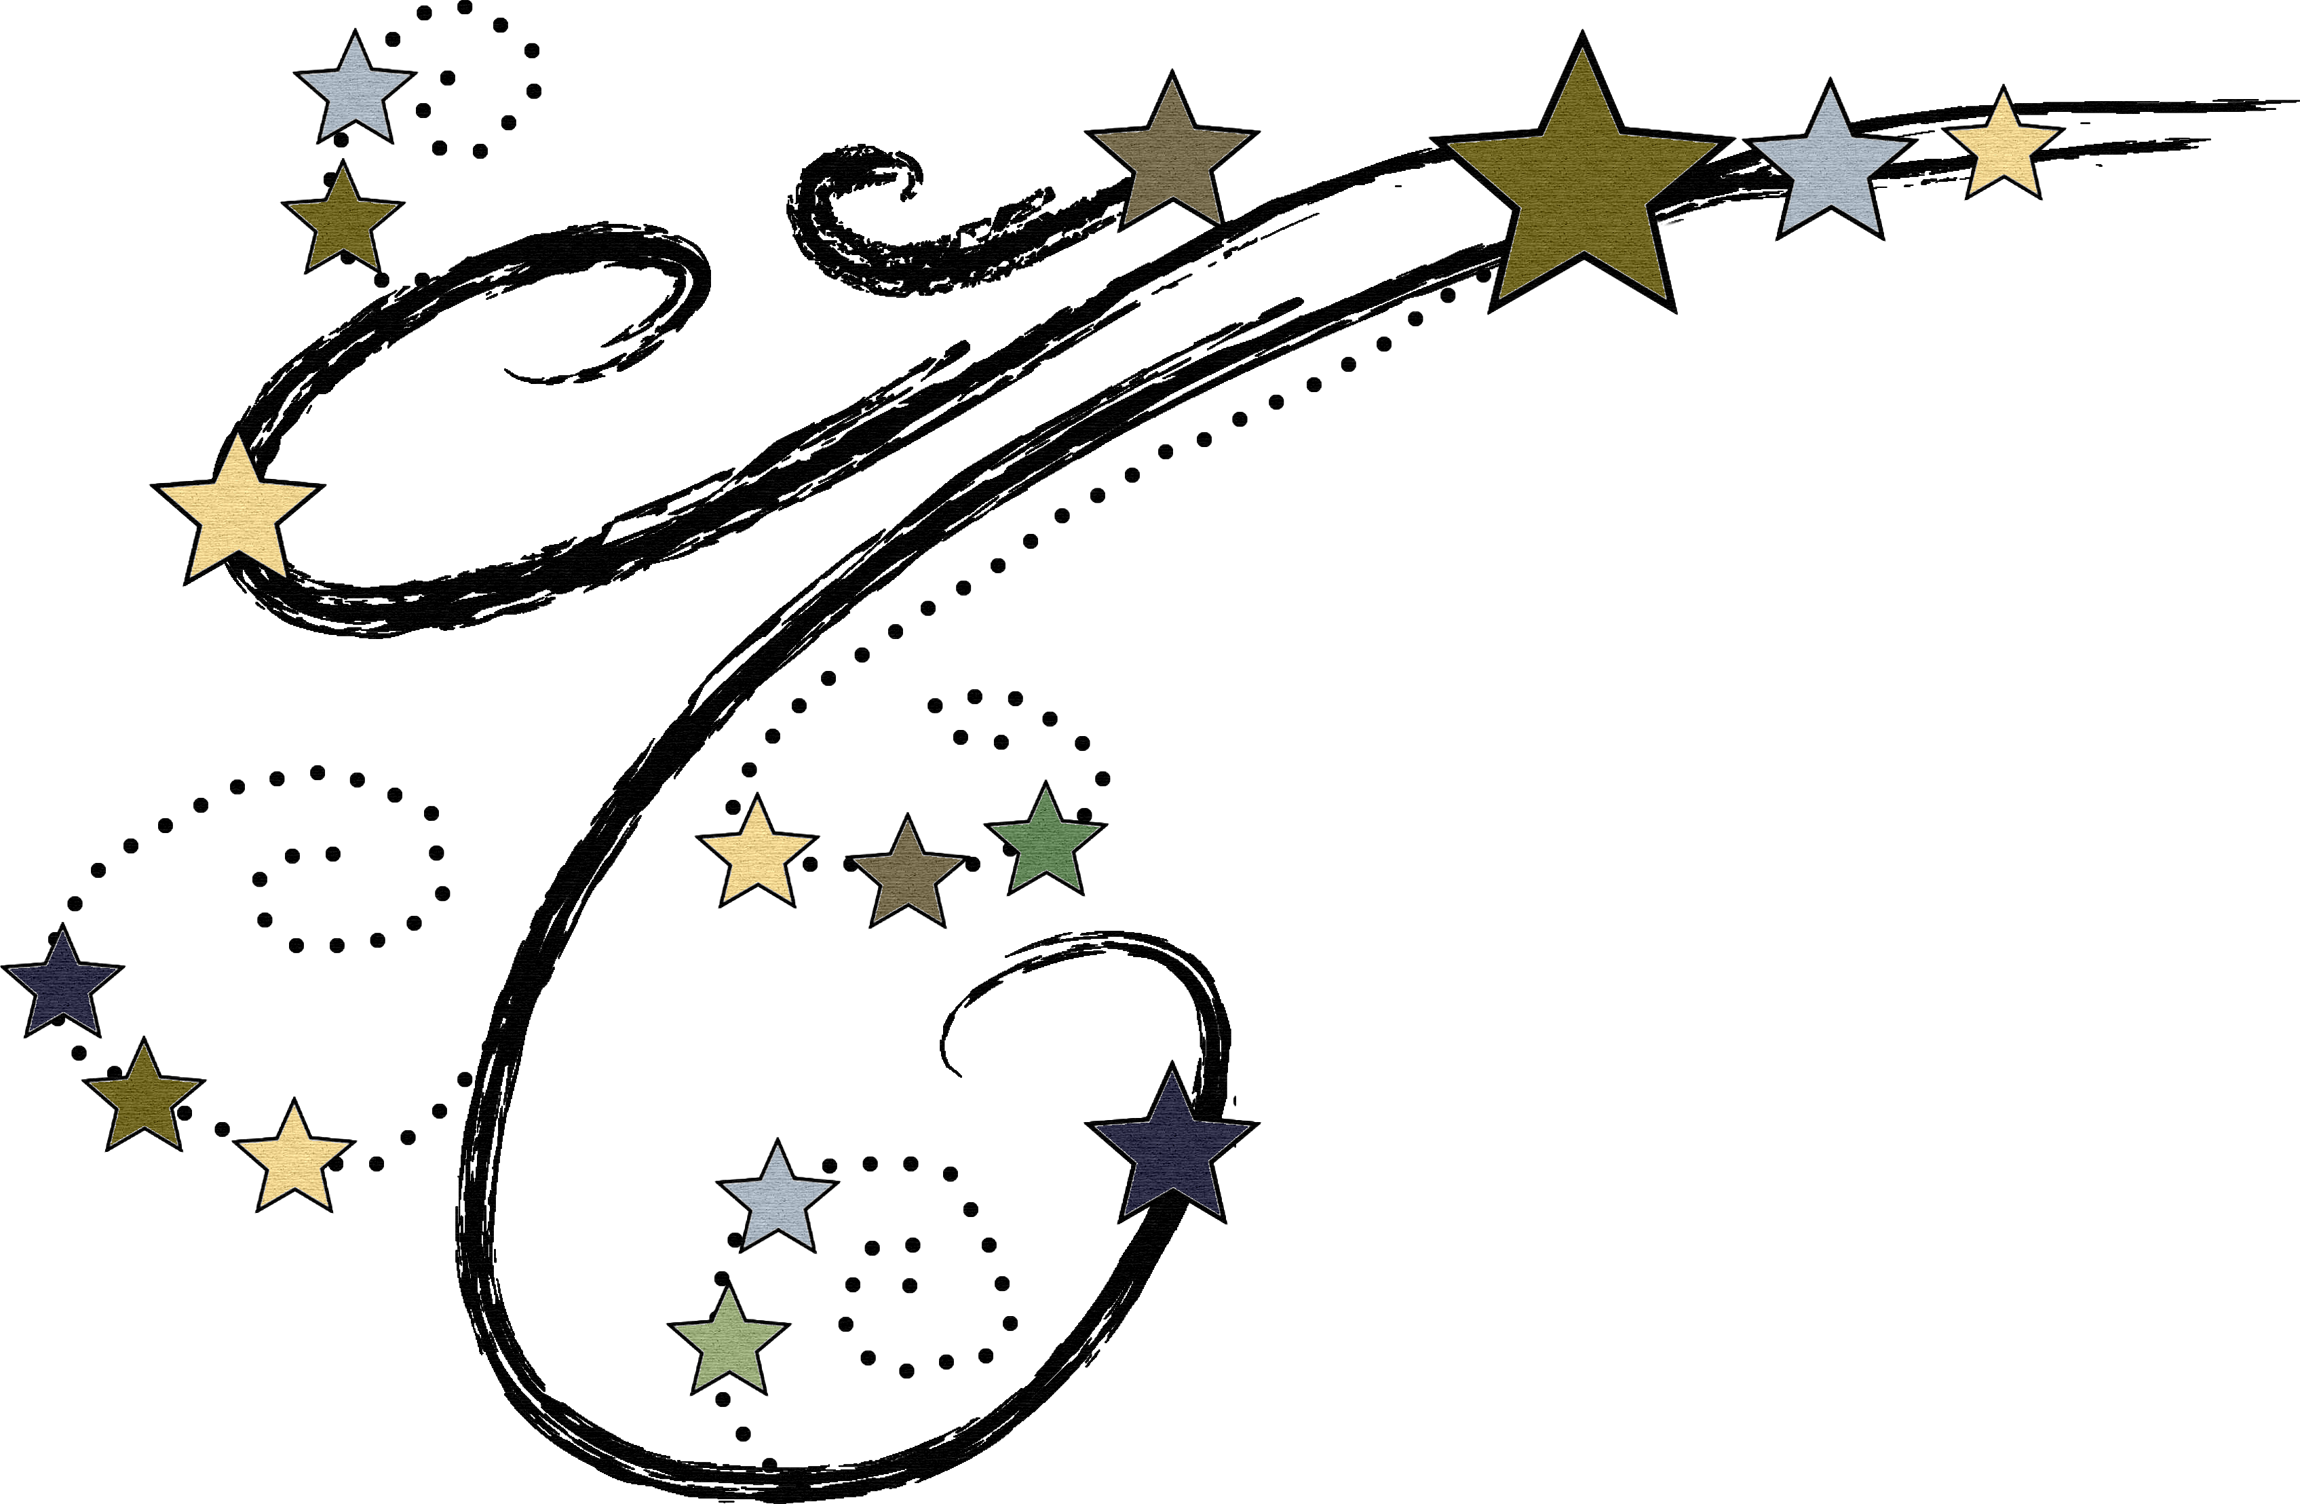 Star clipart clipart clip free download Shooting Star Clip Art Black And White Ysdrmml Image Clip Art clip free download